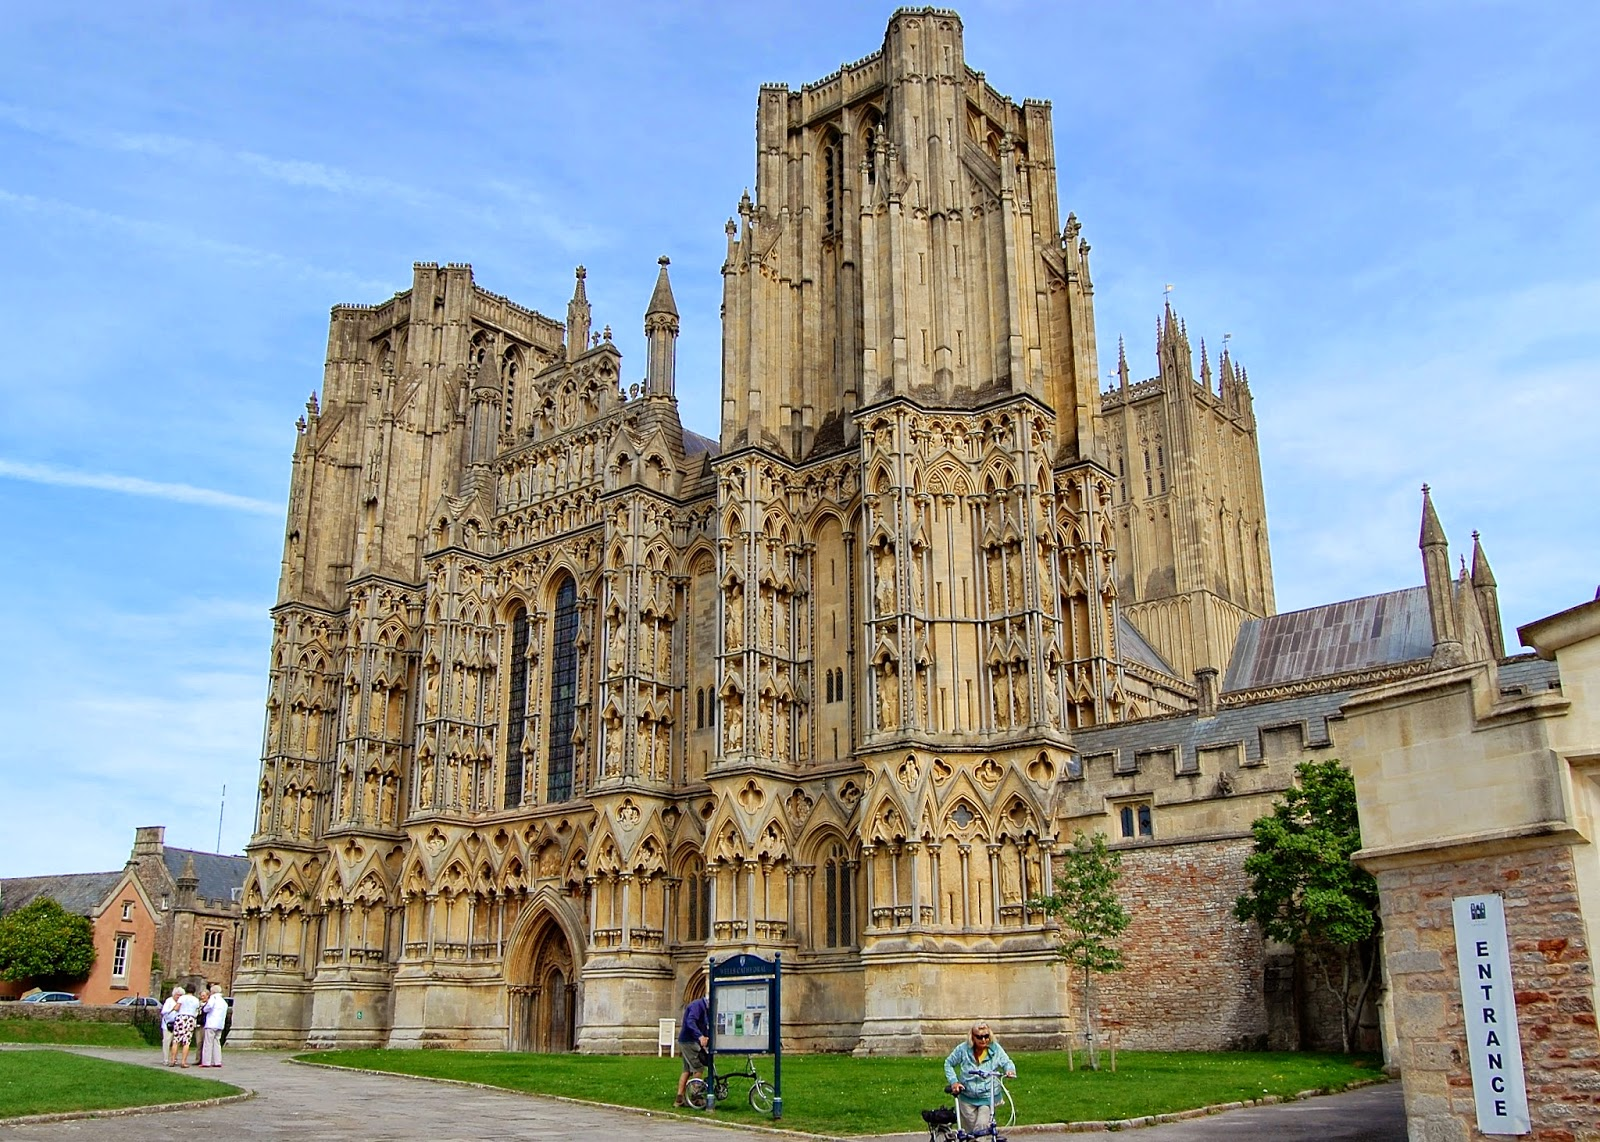 Initial view of Wells Cathedral